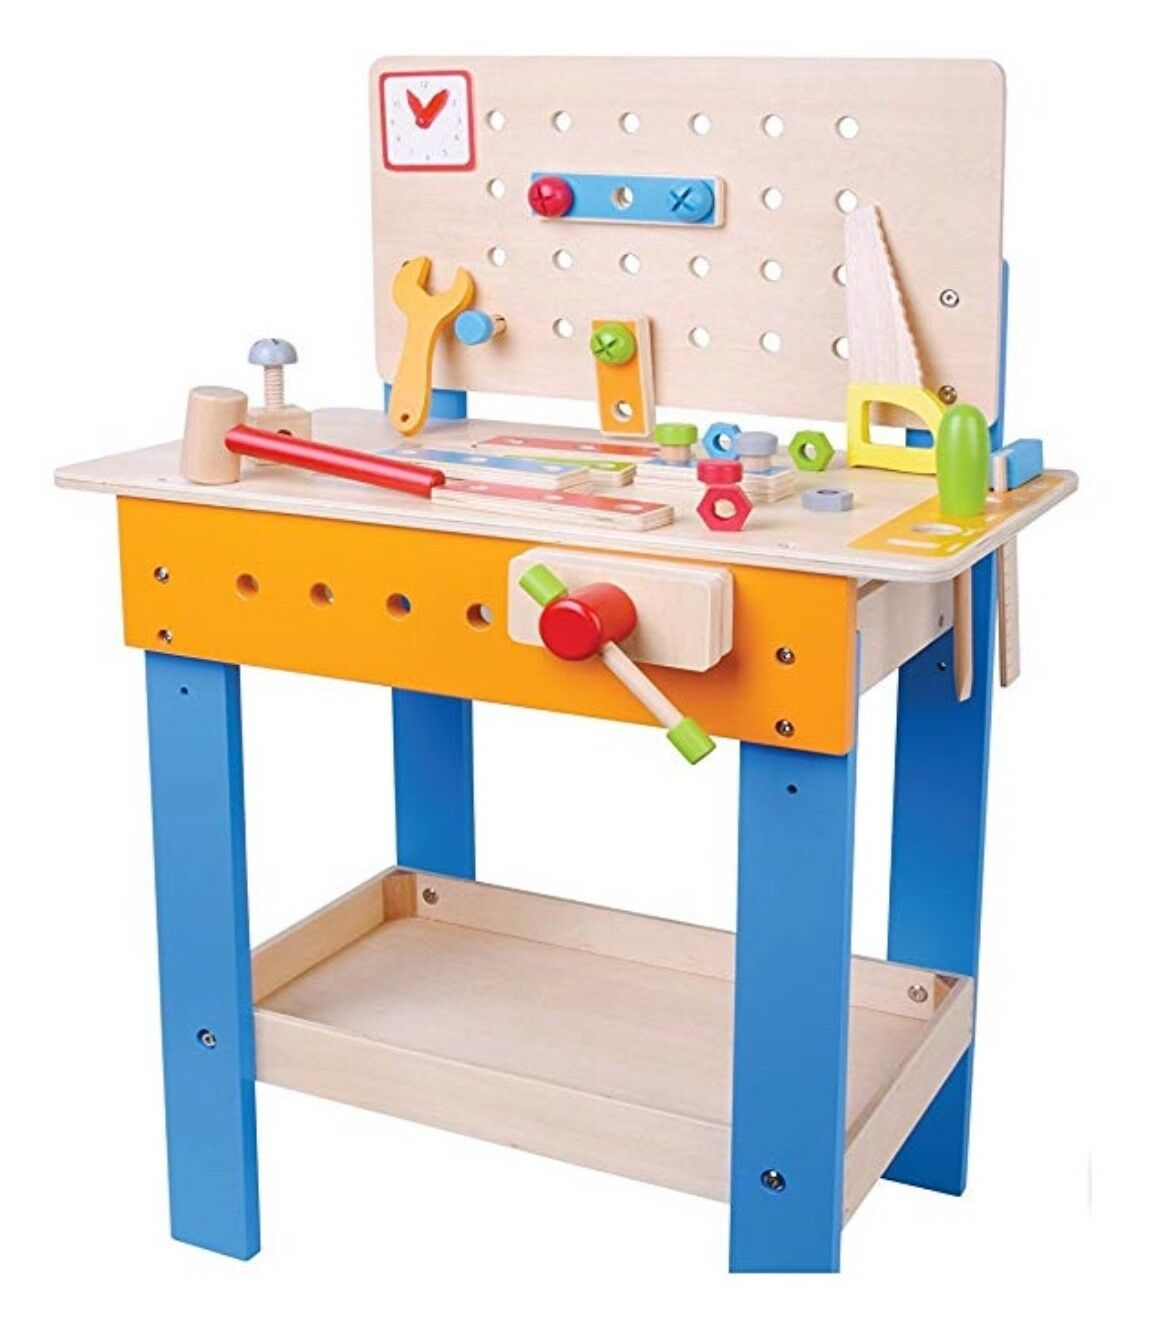 Jumini Wooden Wooden Wooden Workbench With Tools And Accesories 28Pcs NEW 5f0cc7